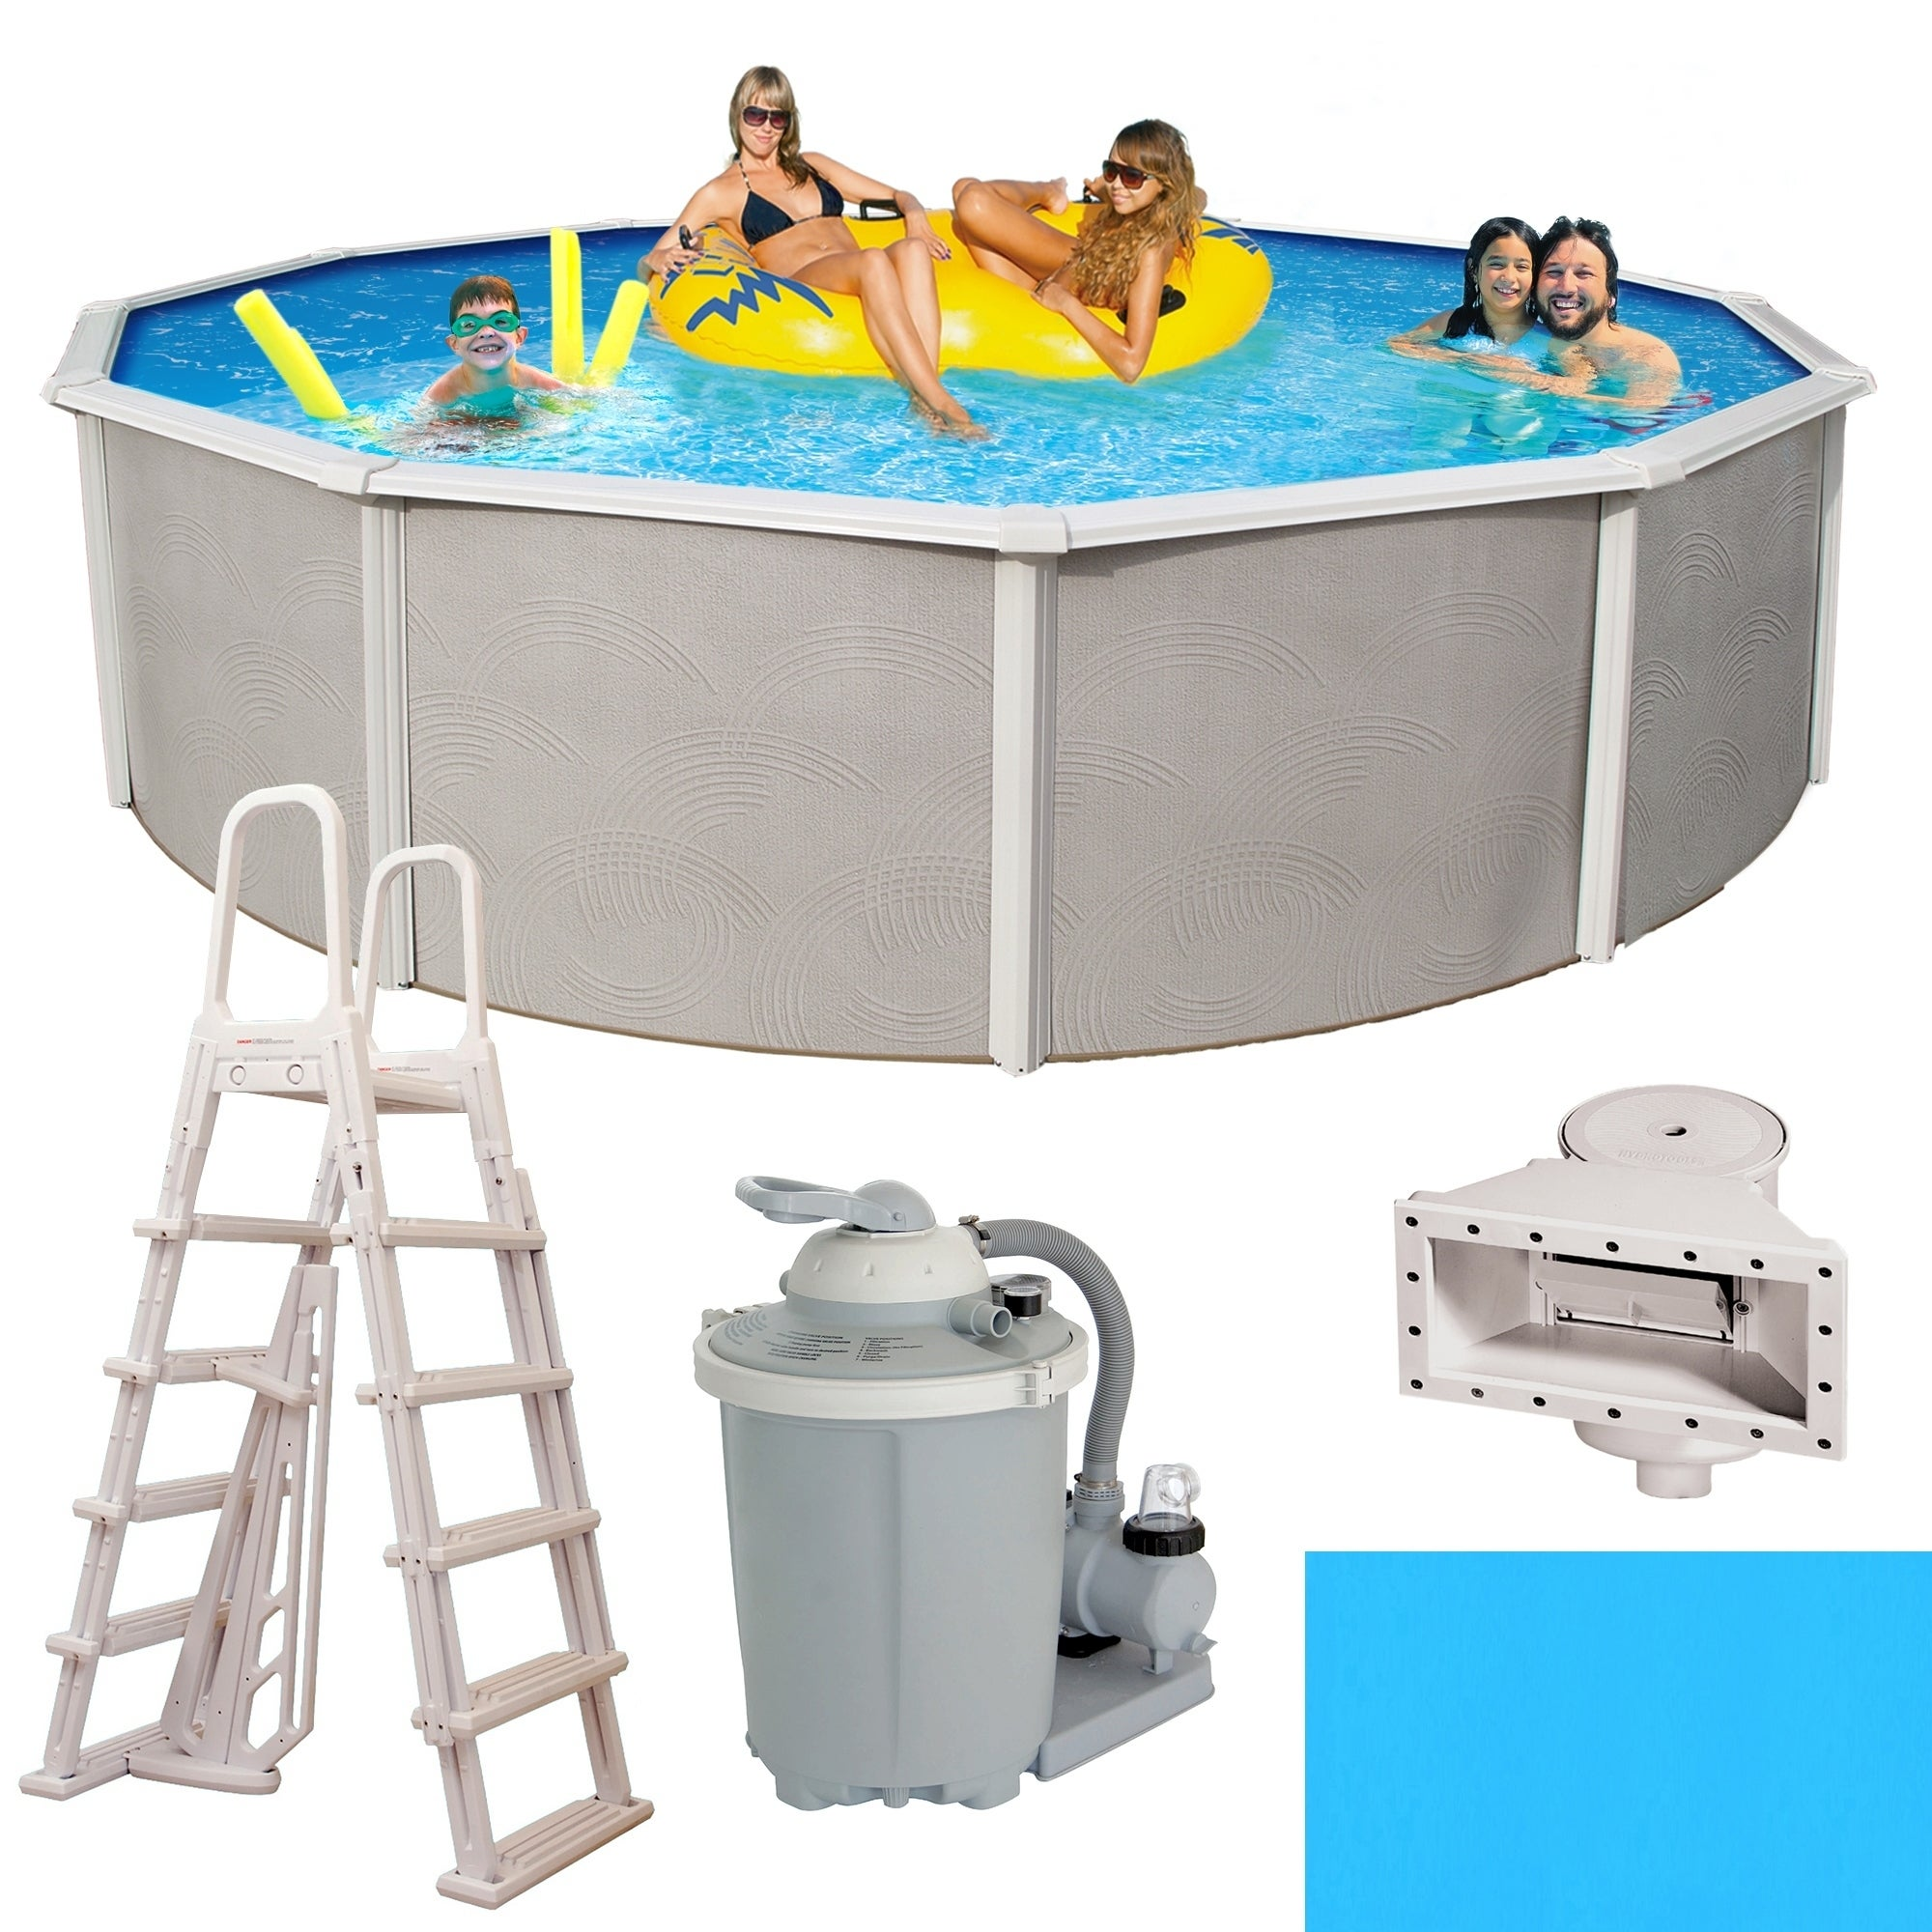 Belize Round 48-inch Deep, 6-inch Top Rail Metal Wall Swimming Pool Package